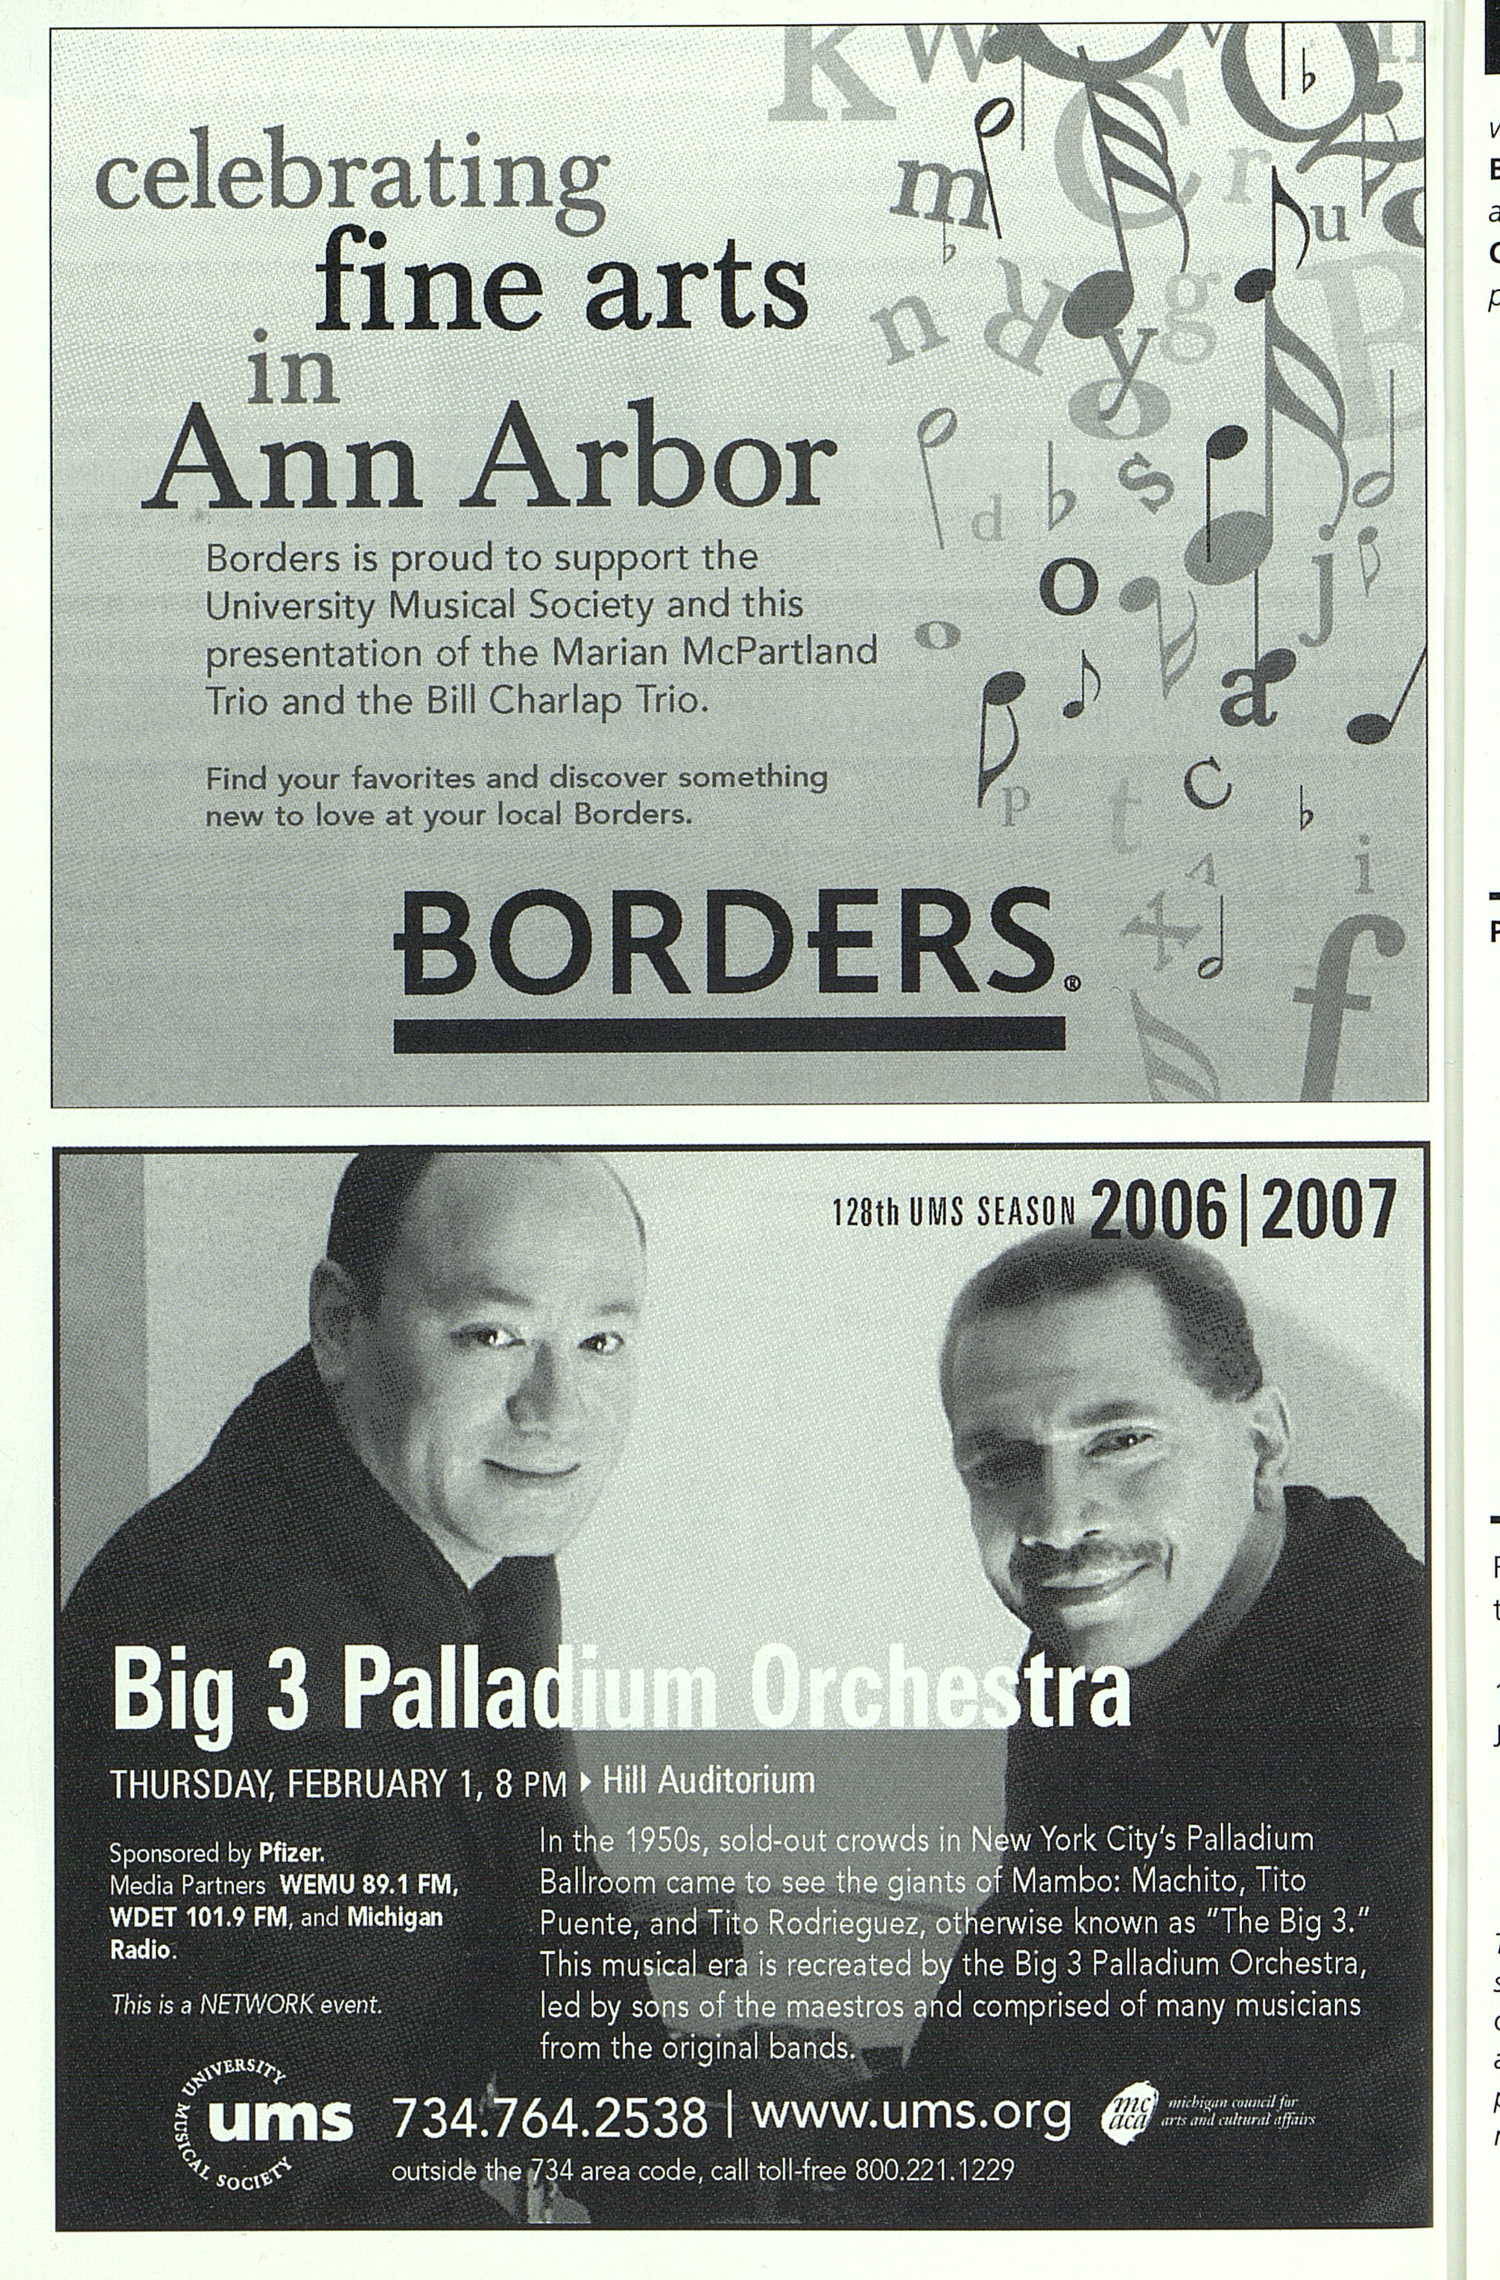 UMS Concert Program, Thursday, Sep. 21 To Oct. 07: University Musical Society: Fall 2006 - Thursday, Sep. 21 To Oct. 07 --  image